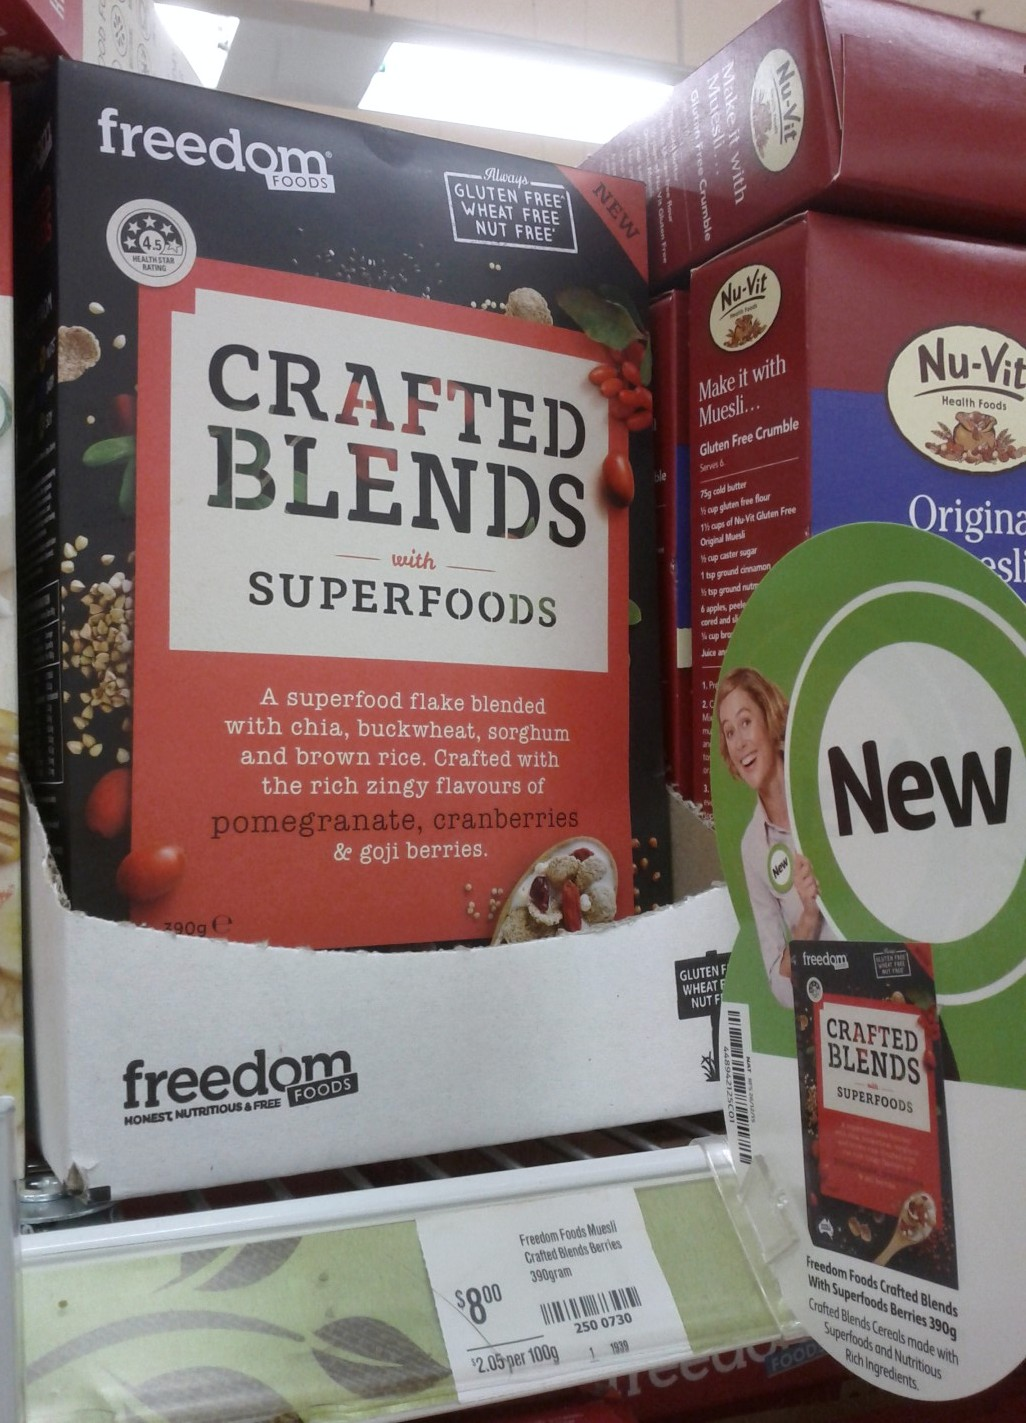 Freedom Foods 390g Crafted Blends with Superfoods